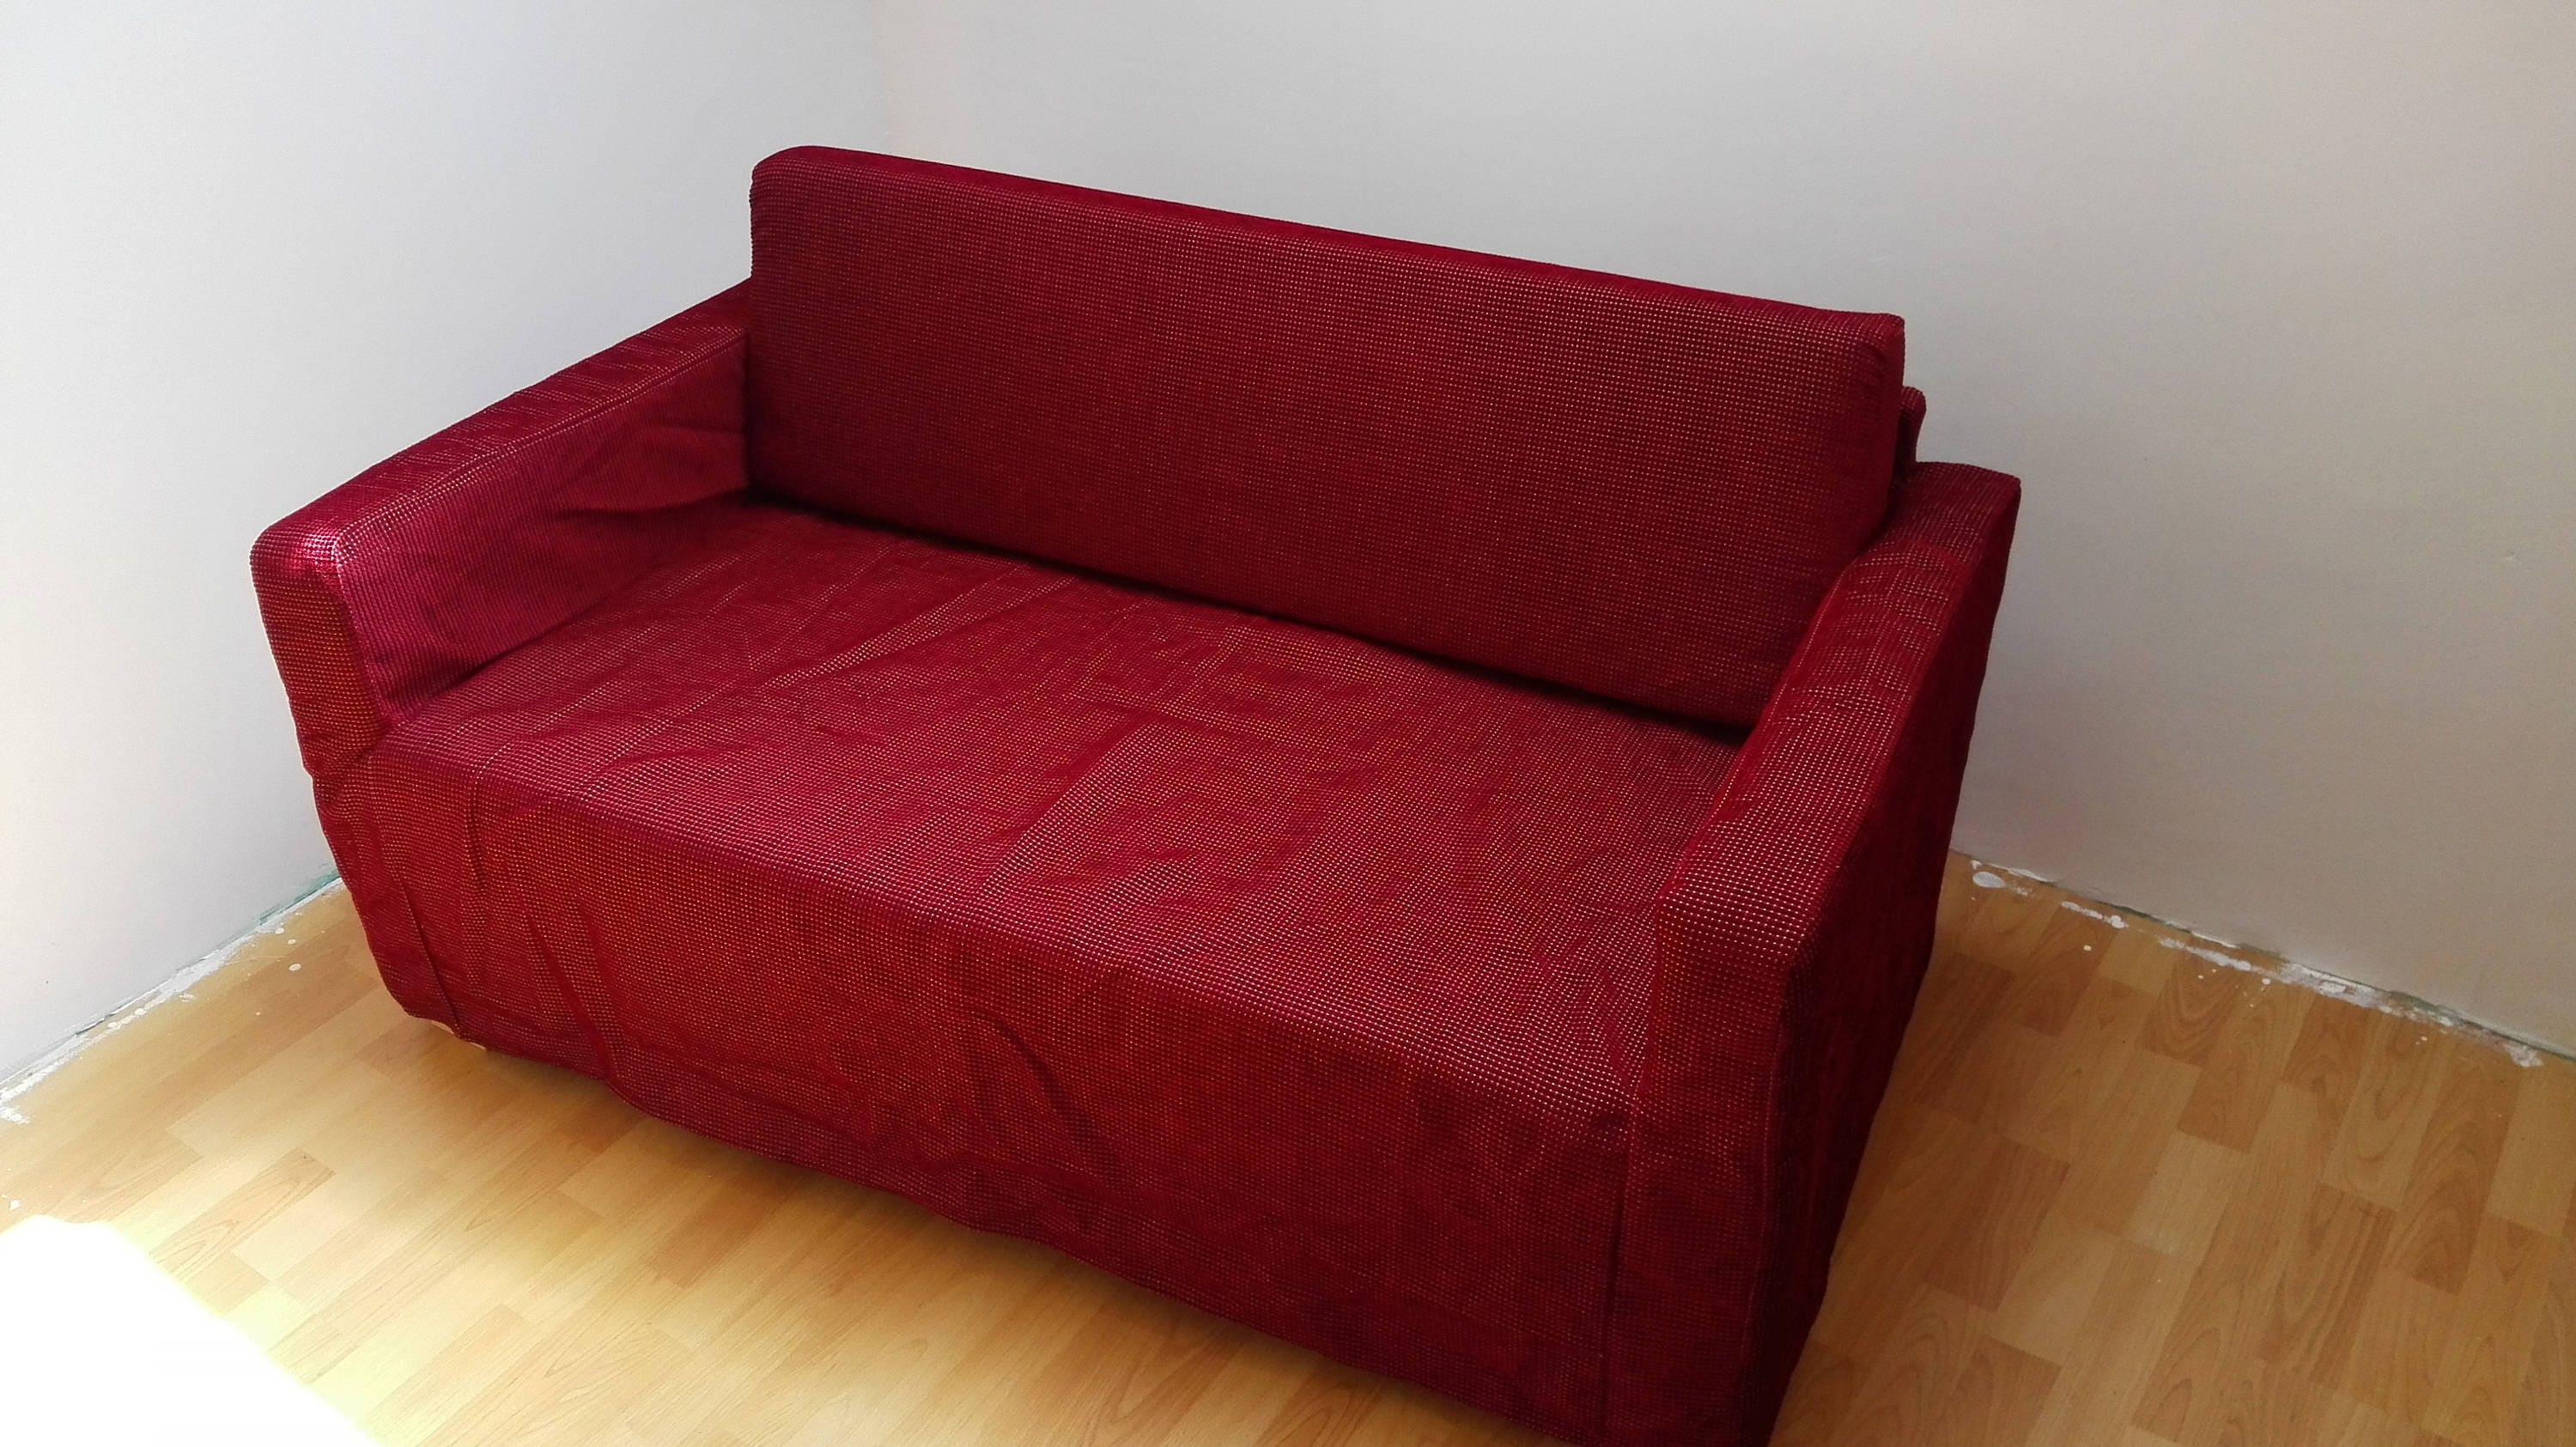 Slipcover for Solsta sofa bed from IKEA reddish brown